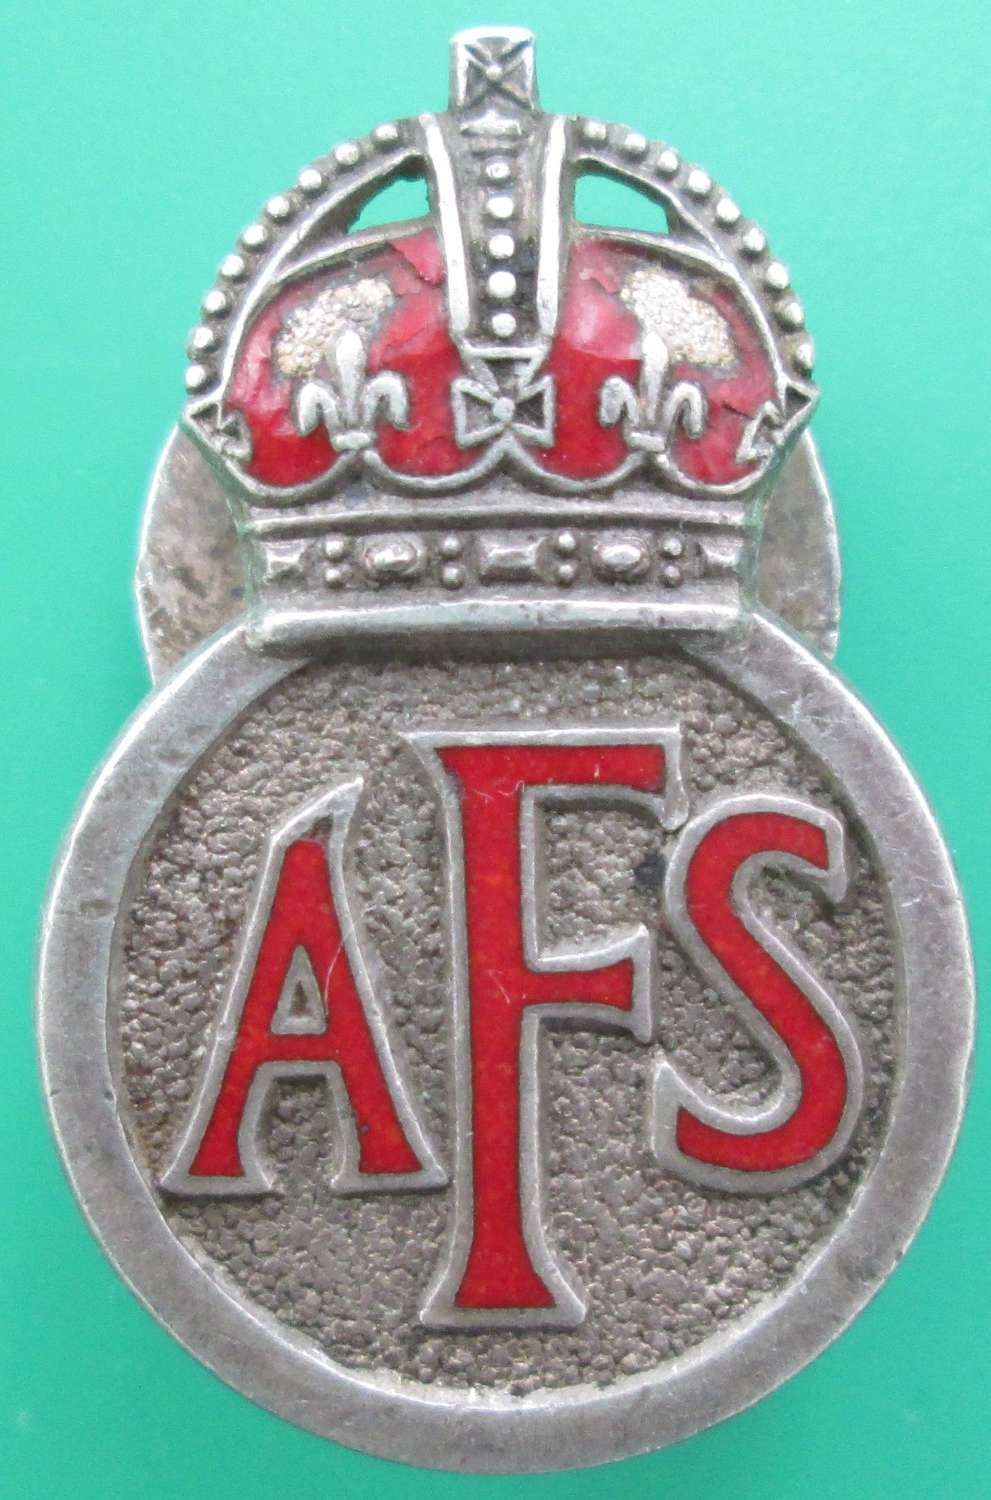 A WWII PERIOD AUXILLARY FIRE SERVICE LAPEL BADGE